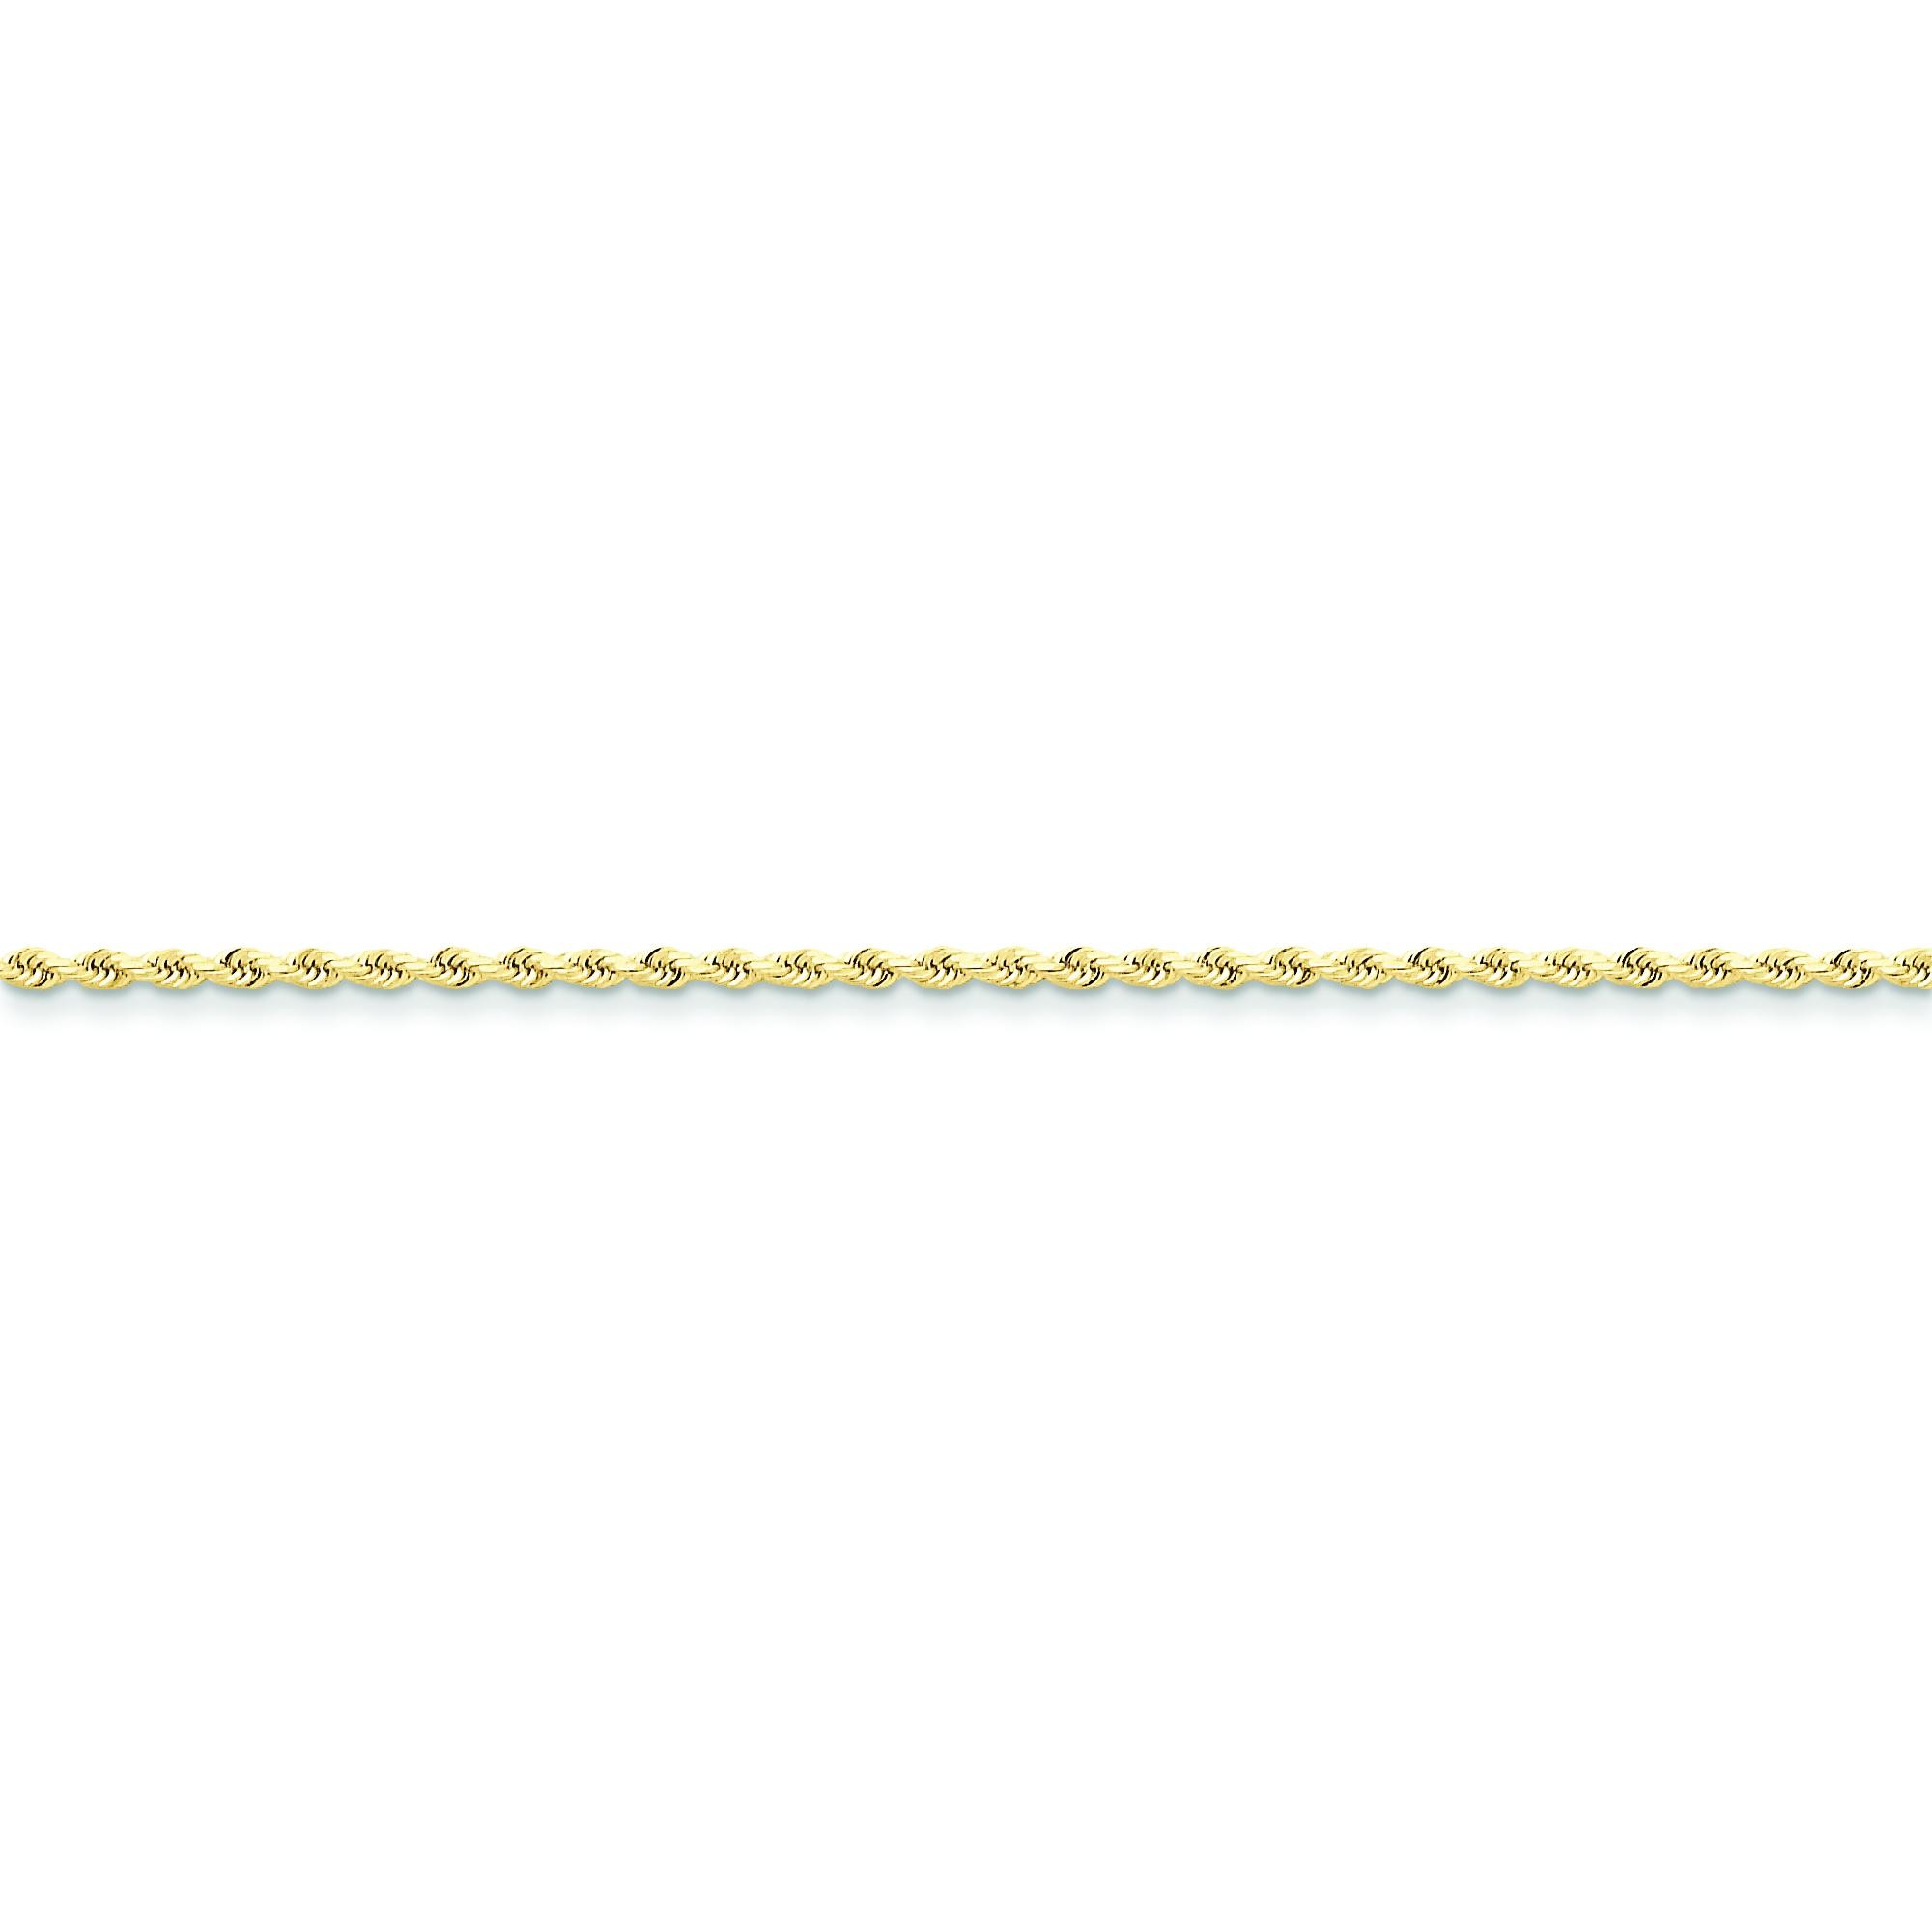 10k Yellow Gold 8 inch 2.00 mm Handmade Rope Chain Bracelet